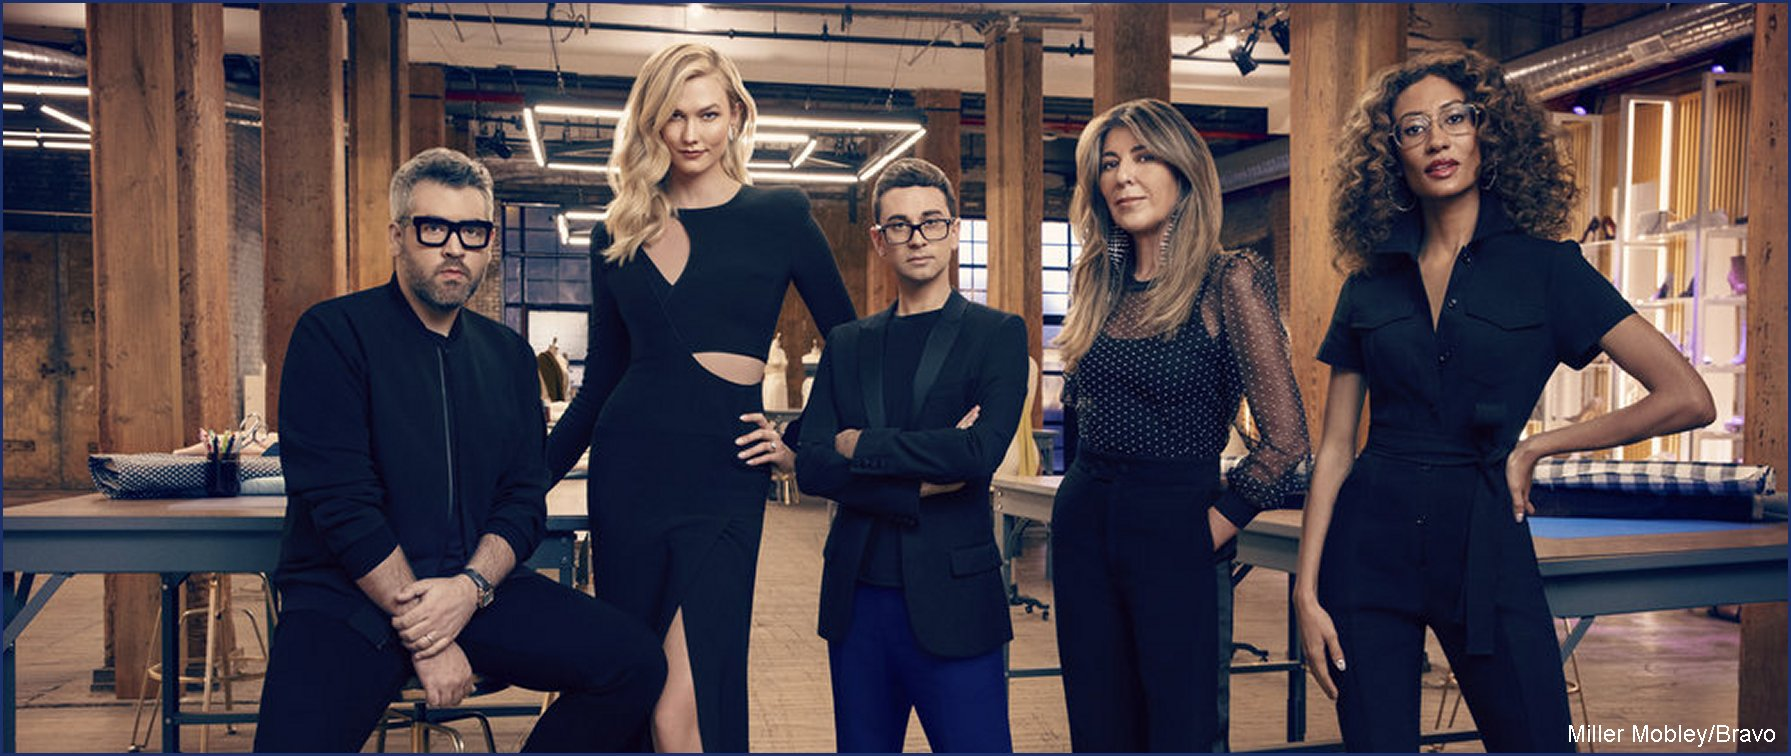 Project Runway Premiere Date And Cast Of 16 Designers Announced By Bravo